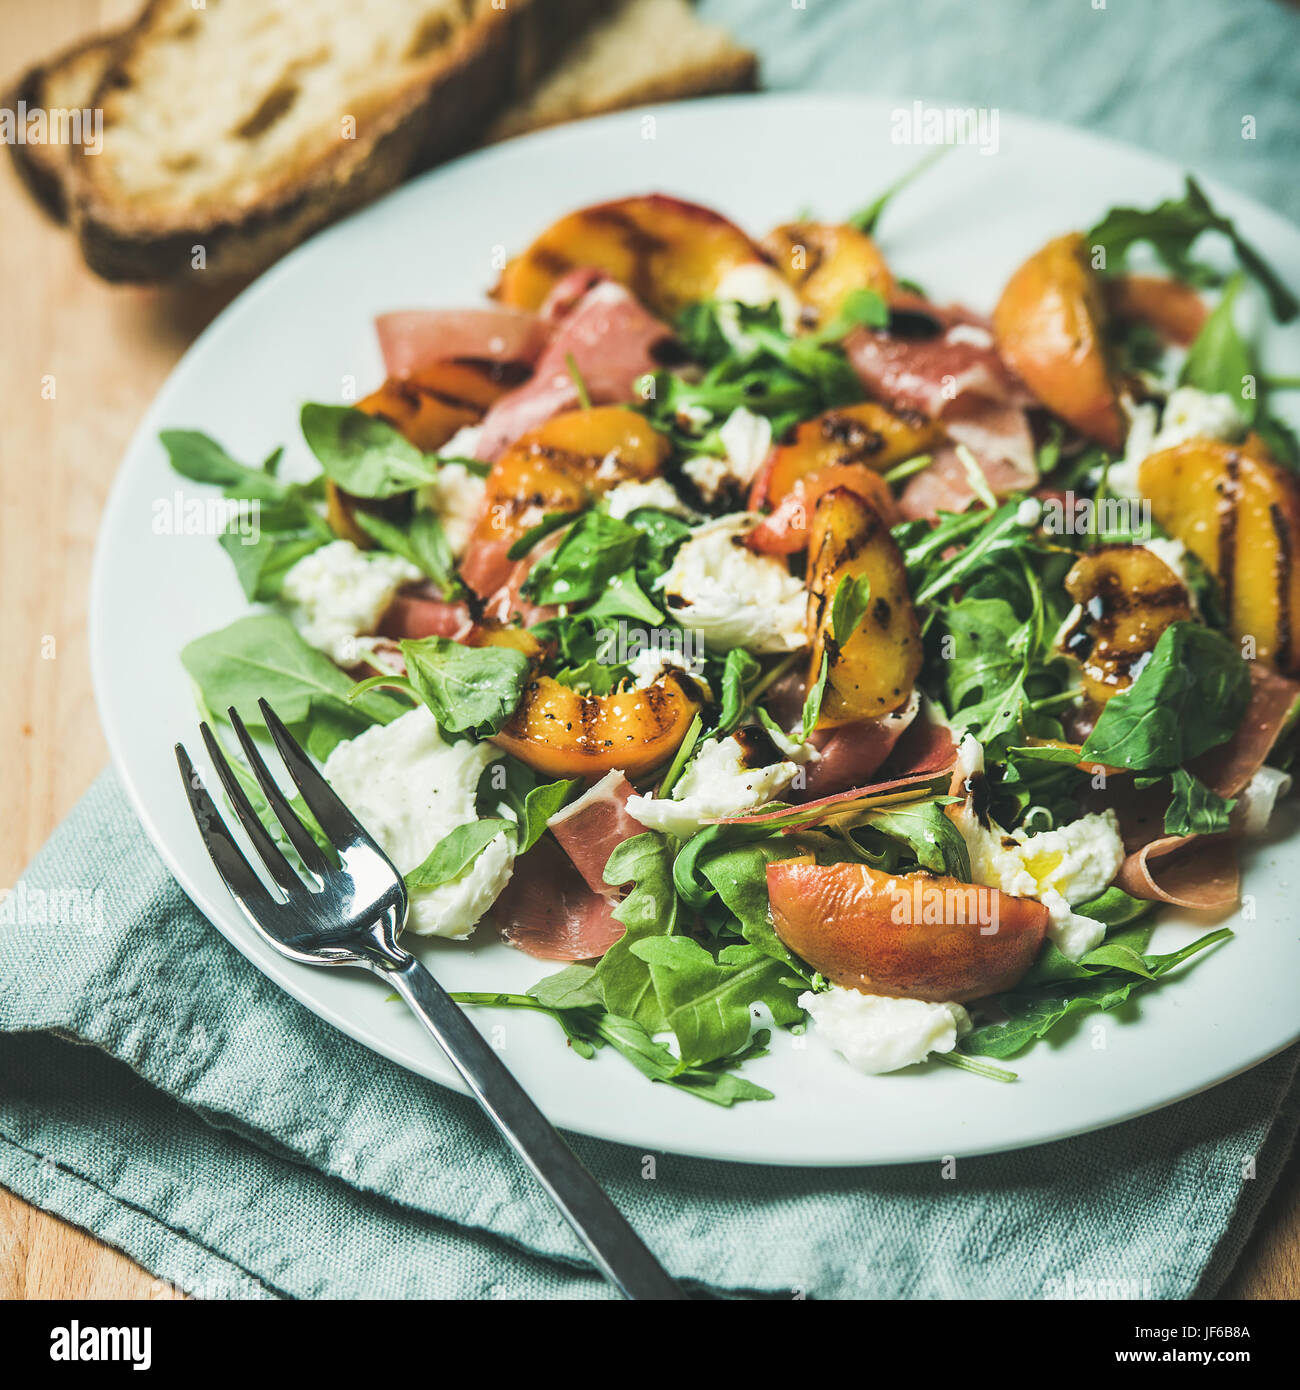 Arugula, prosciutto, mozzarella and grilled peach salad - Stock Image